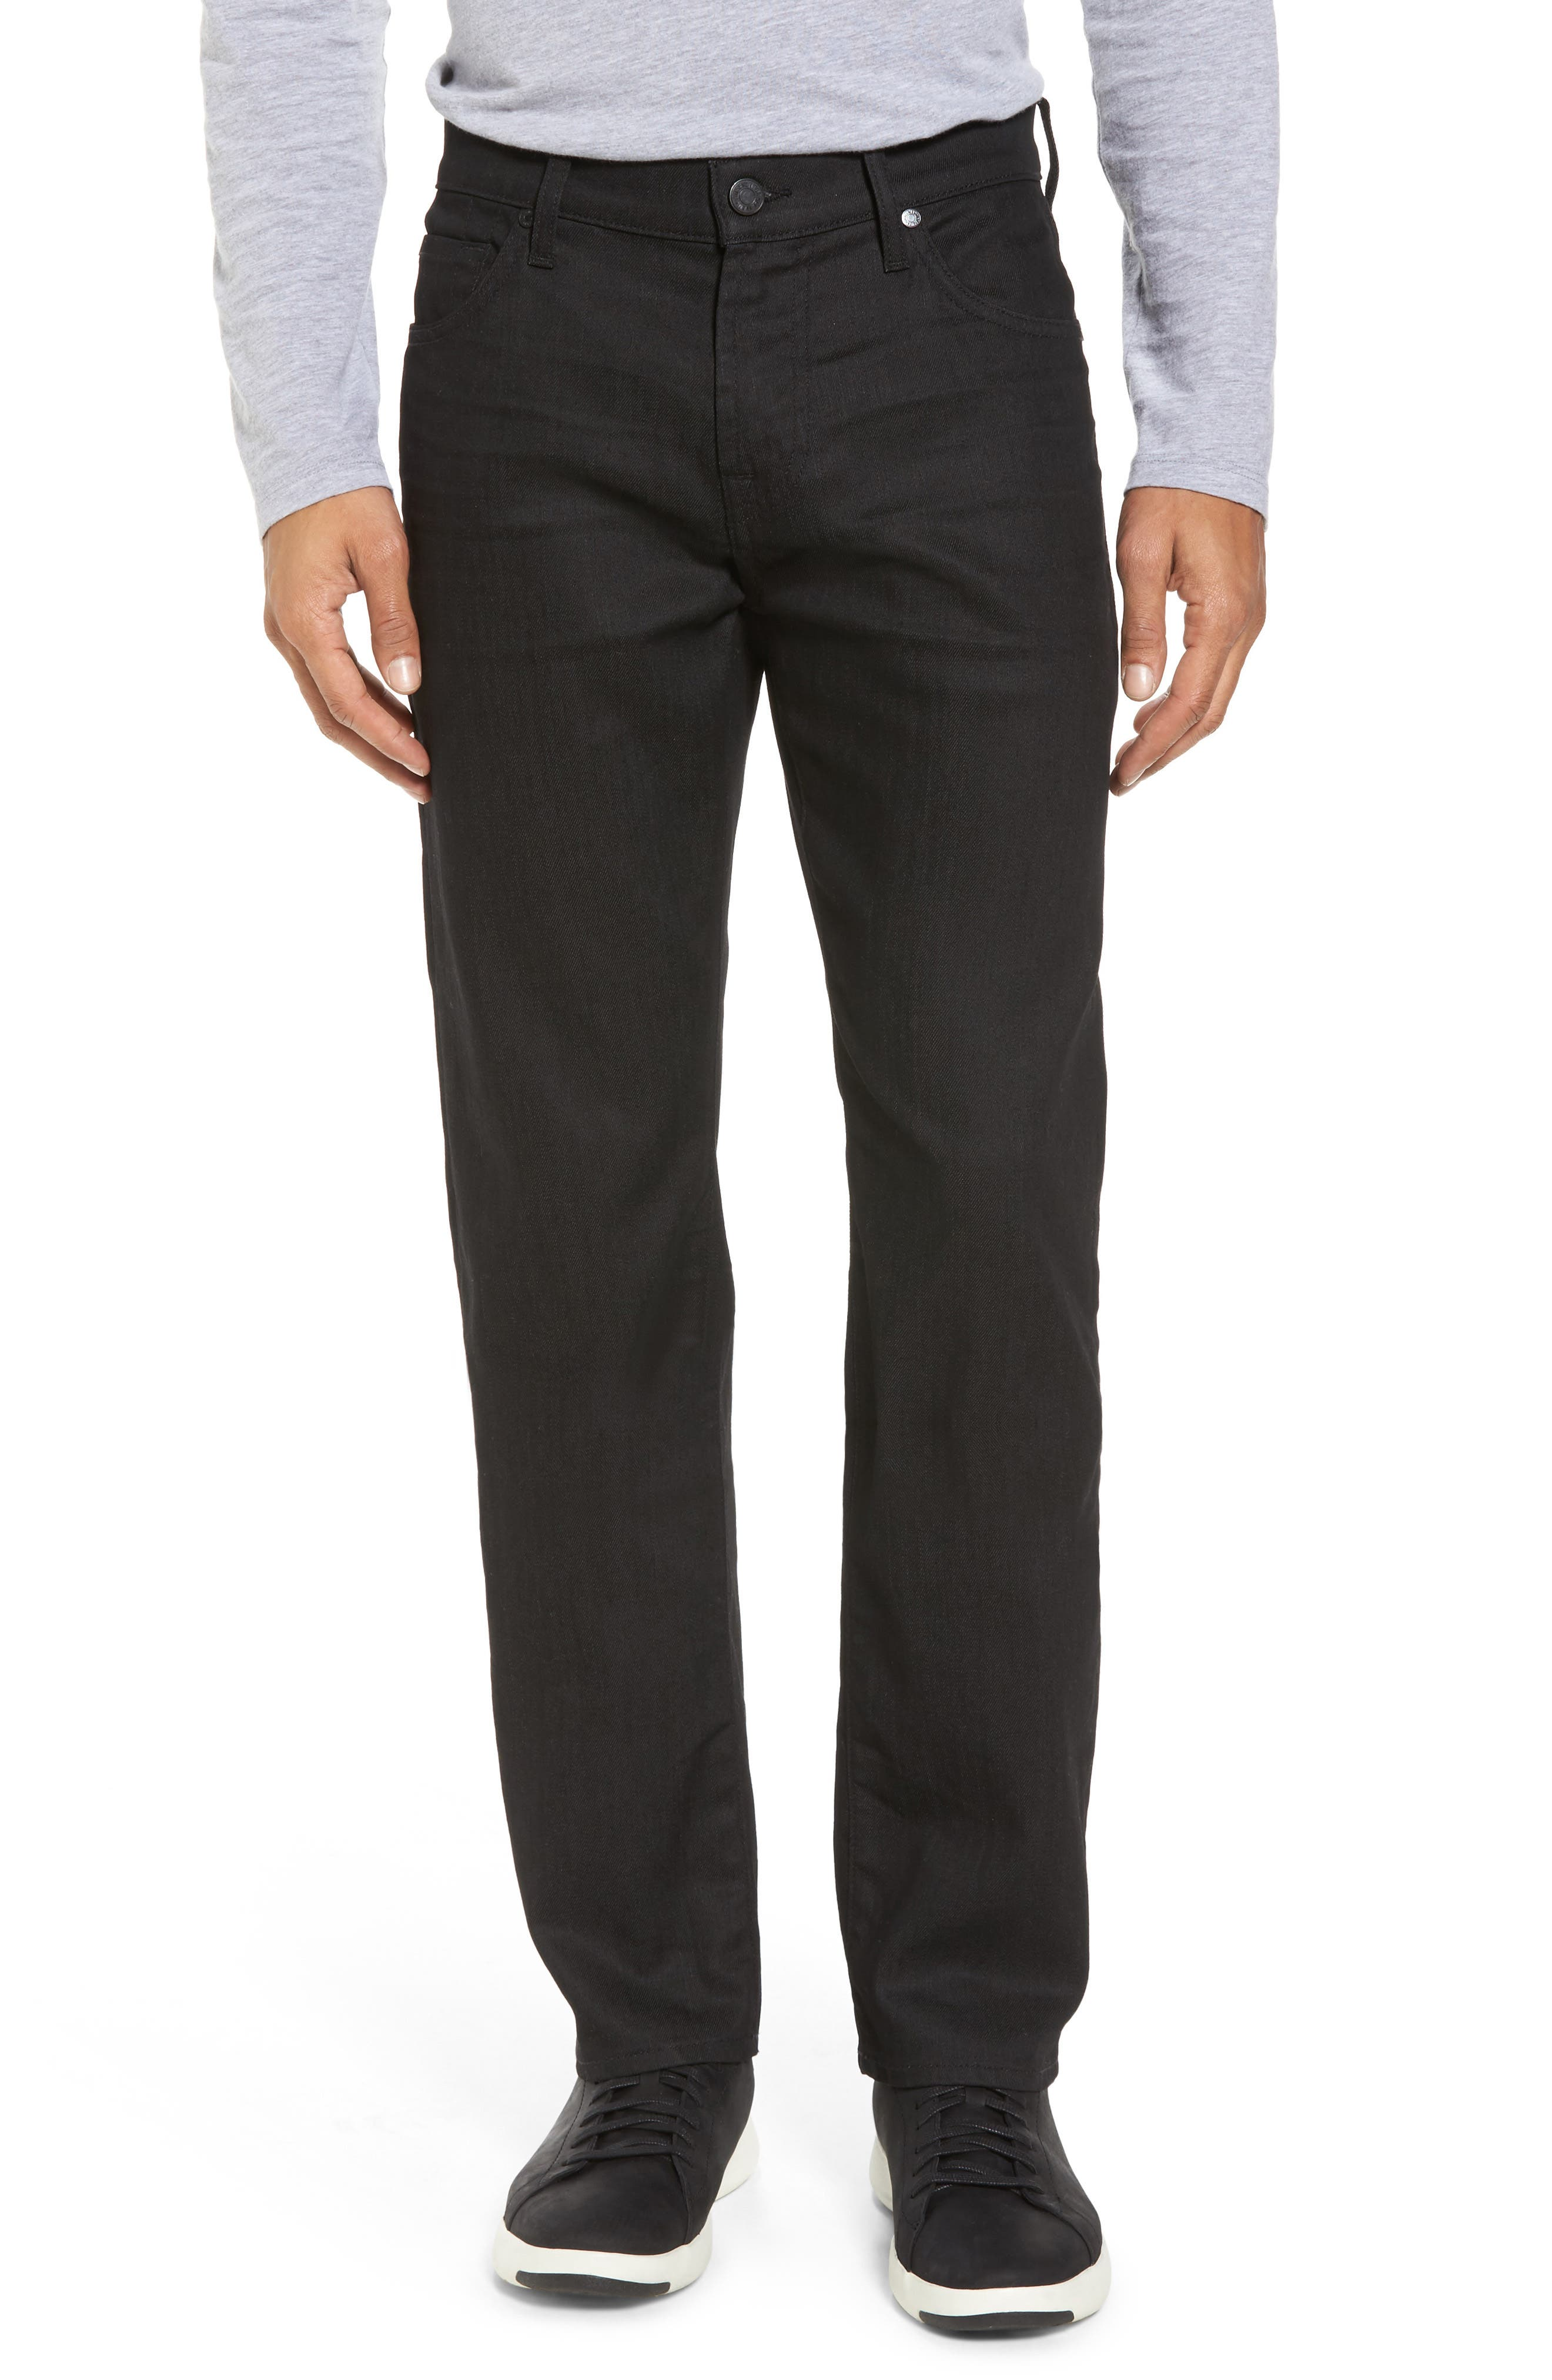 Main Image - 7 For All Mankind® Airweft - Slimmy Slim Fit Jeans (Soiree Black)